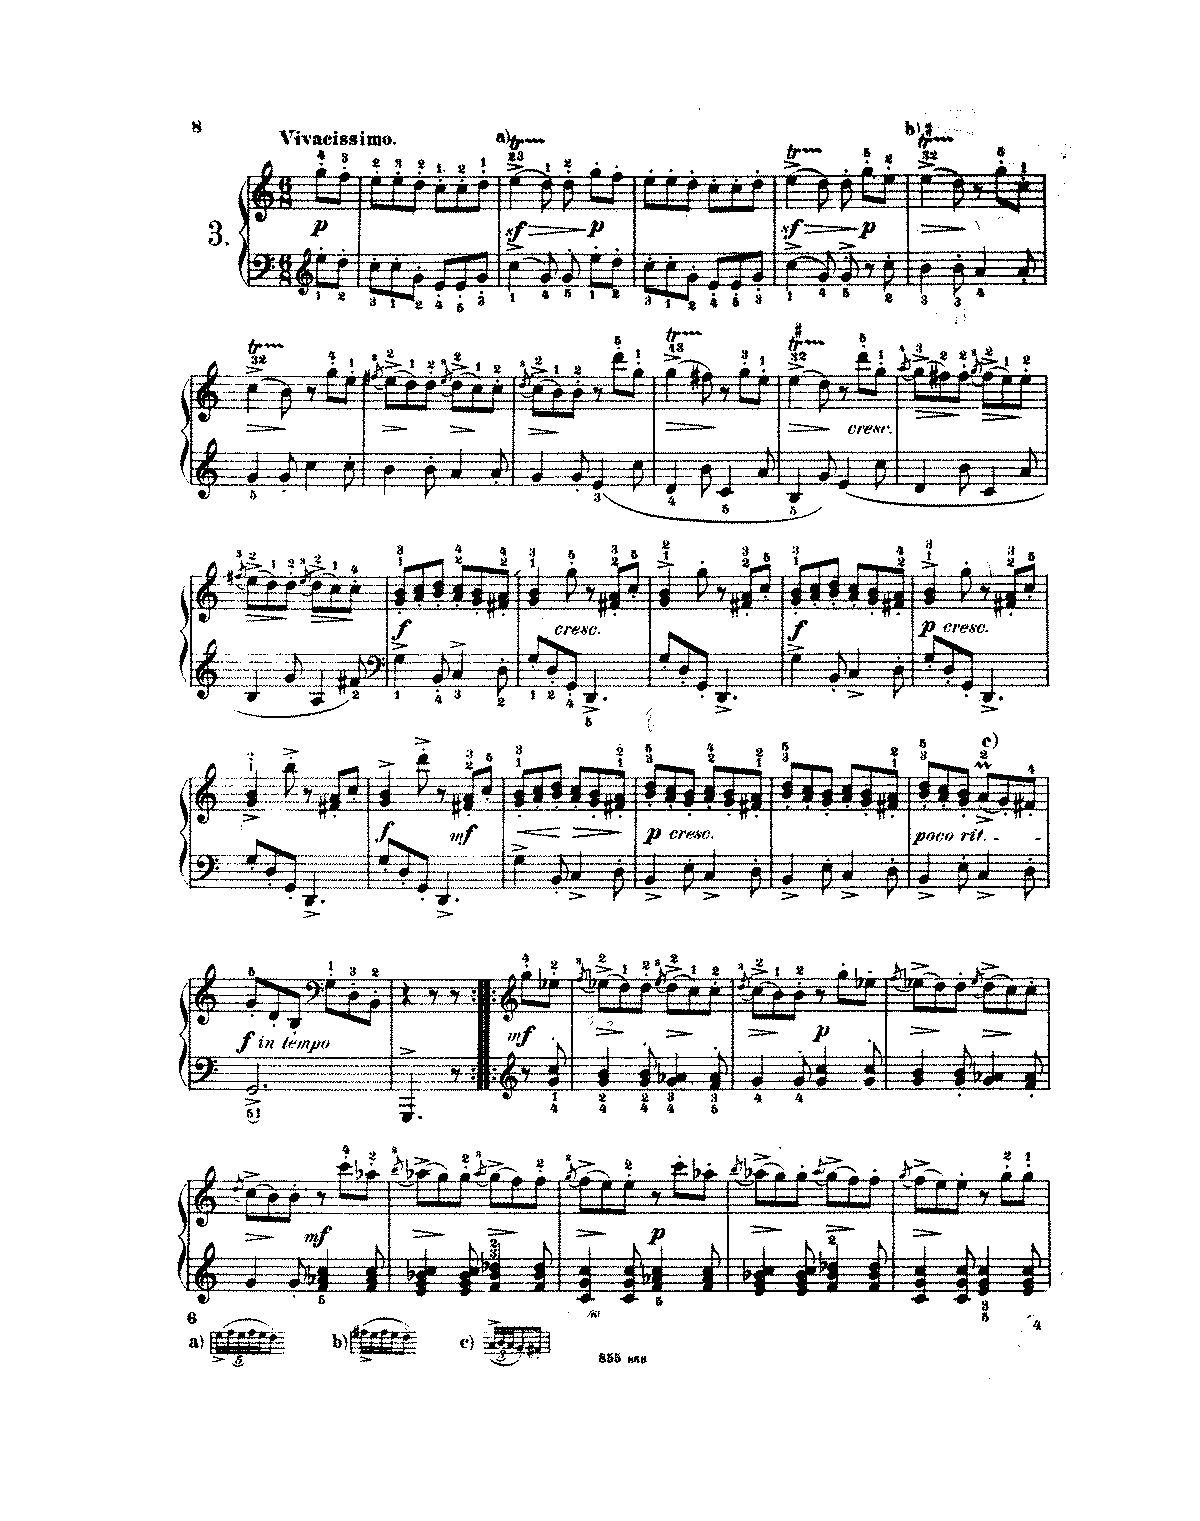 PMLP310488-Sibley1802.22722 - No. 3 - Sonata in C major, K. 159.pdf